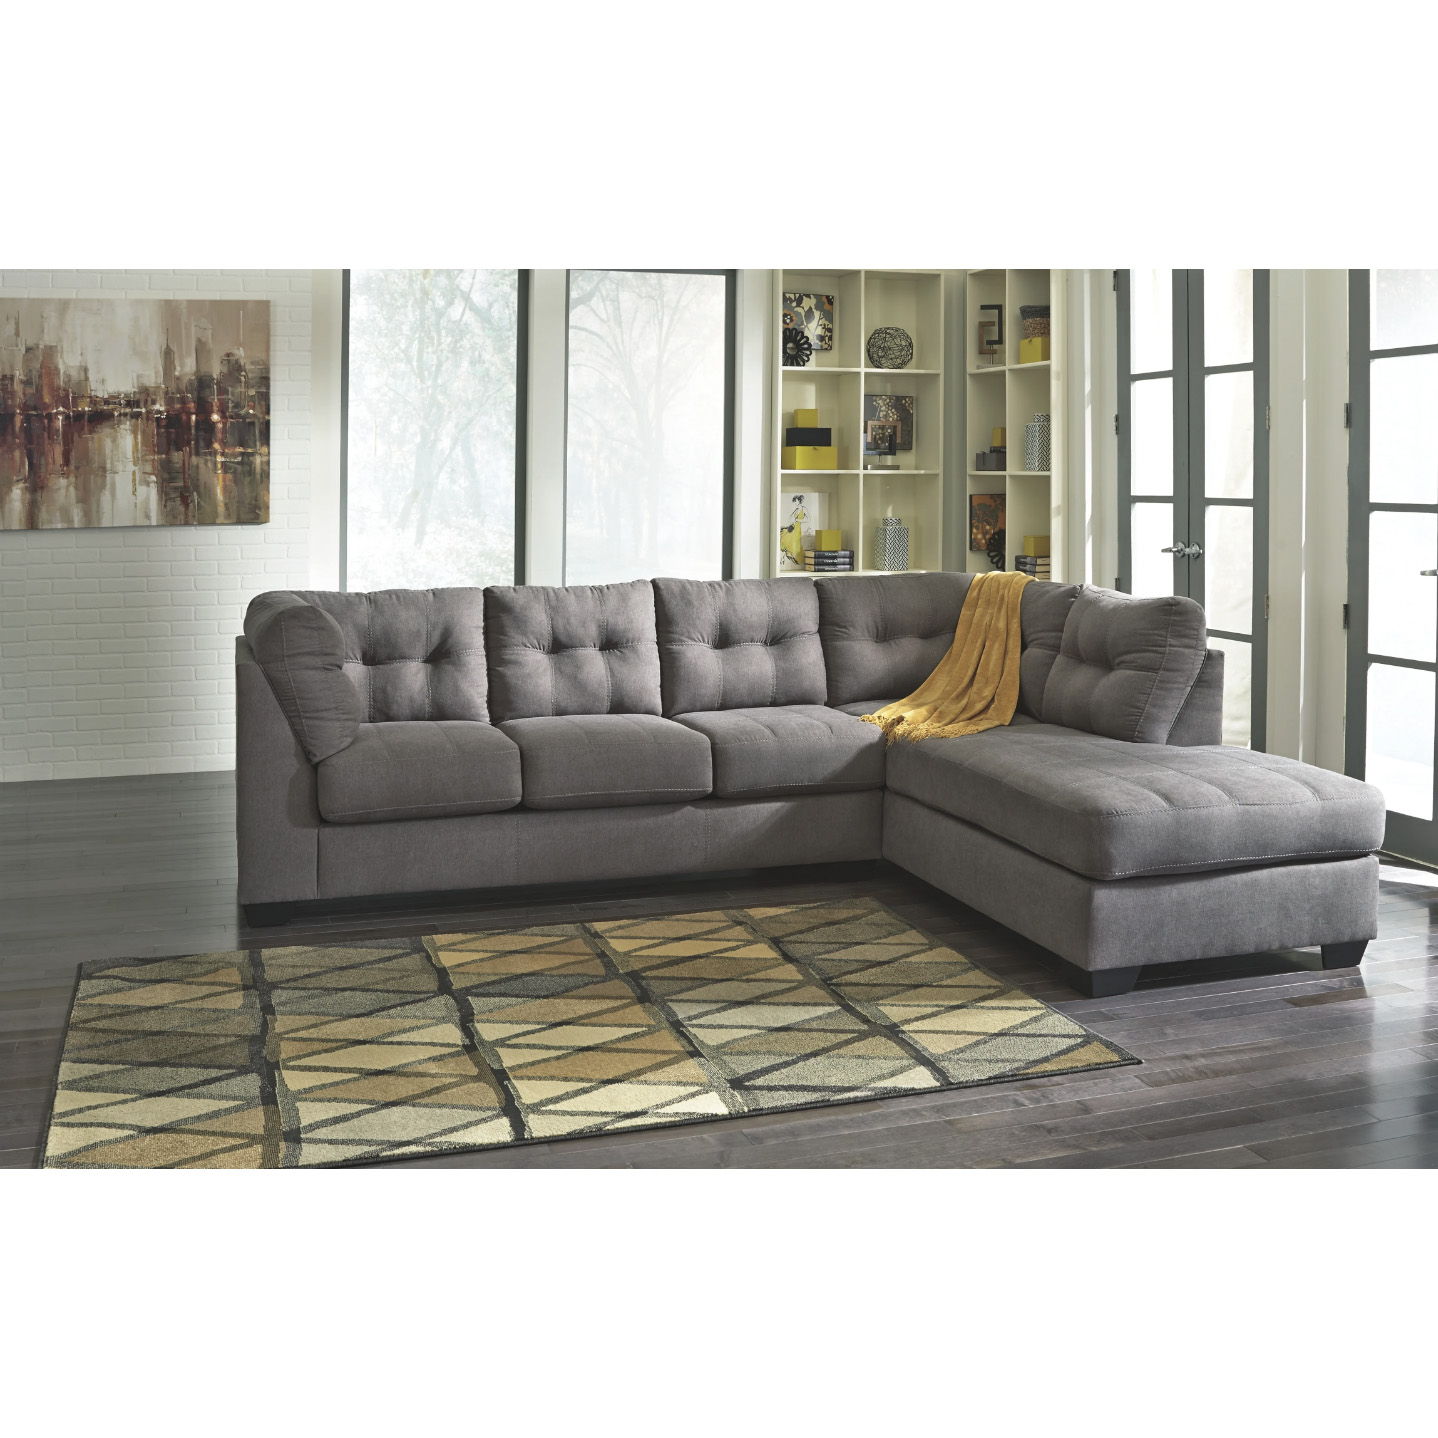 Maier - Charcoal - LAF Sofa & RAF Corner Chaise Sectional